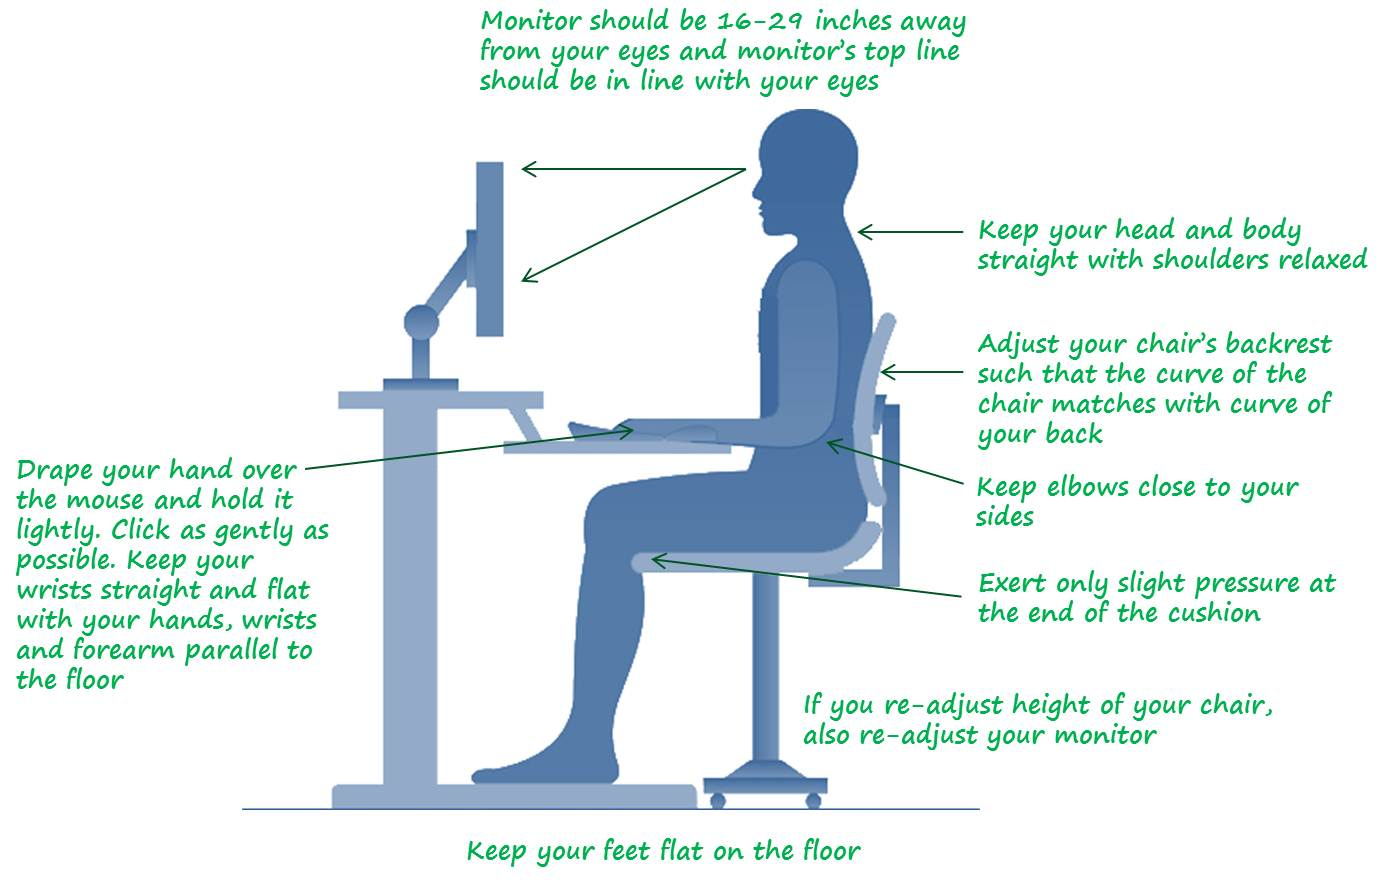 office chair posture tips covers jf ergonomics for desktop maintain a good infographic